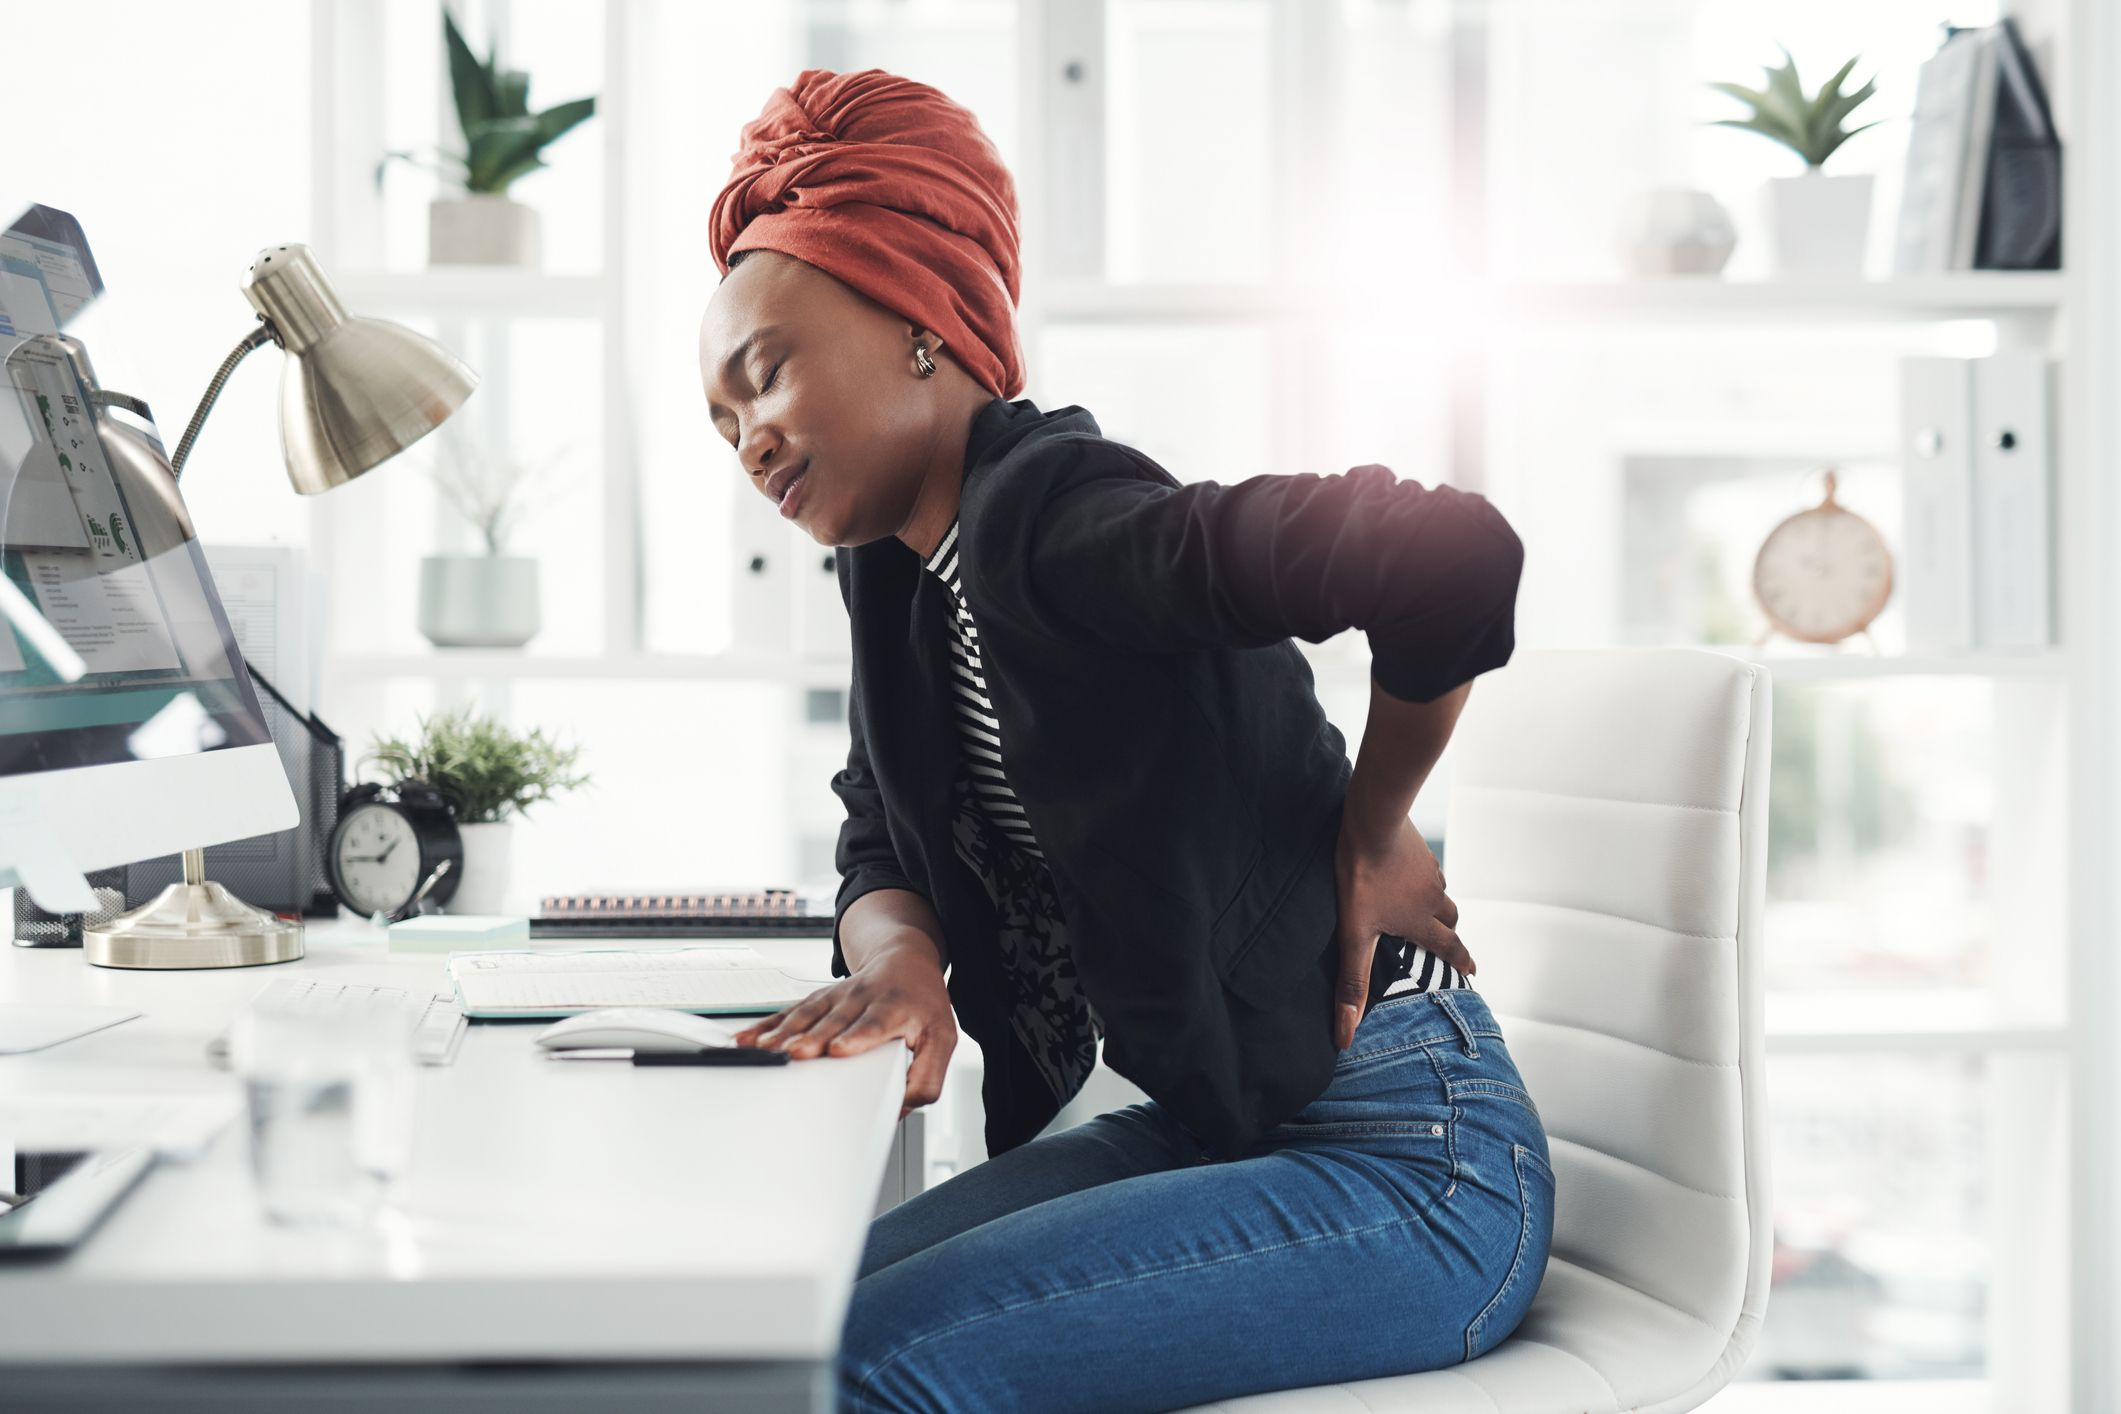 8 Causes Of Lower Back Pain In Women According To Doctors